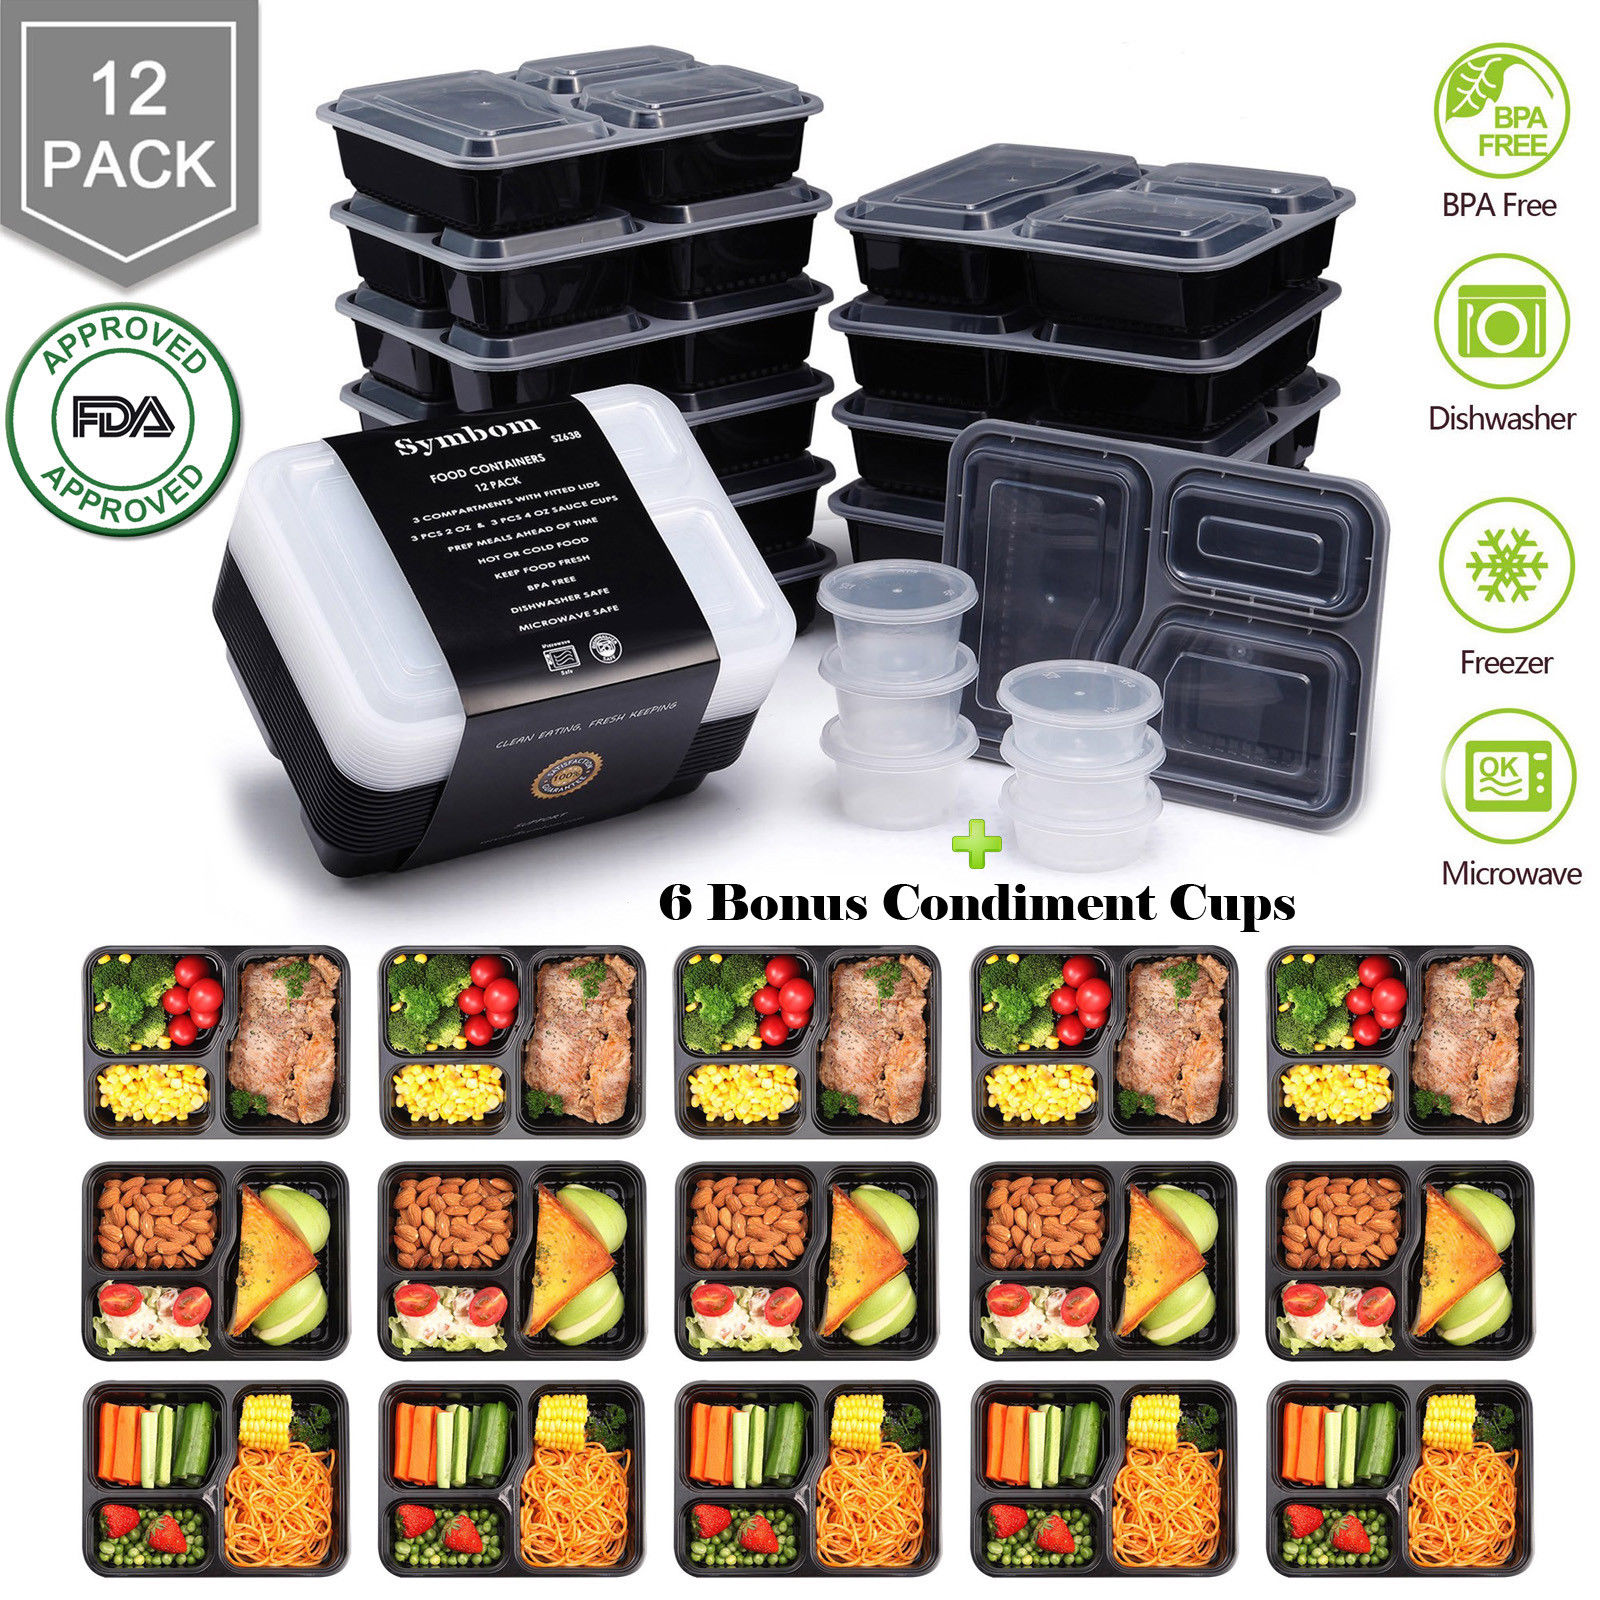 12 Meal Prep Containers Food Storage 3 Compartment Plastic Reusable Microwavable 1